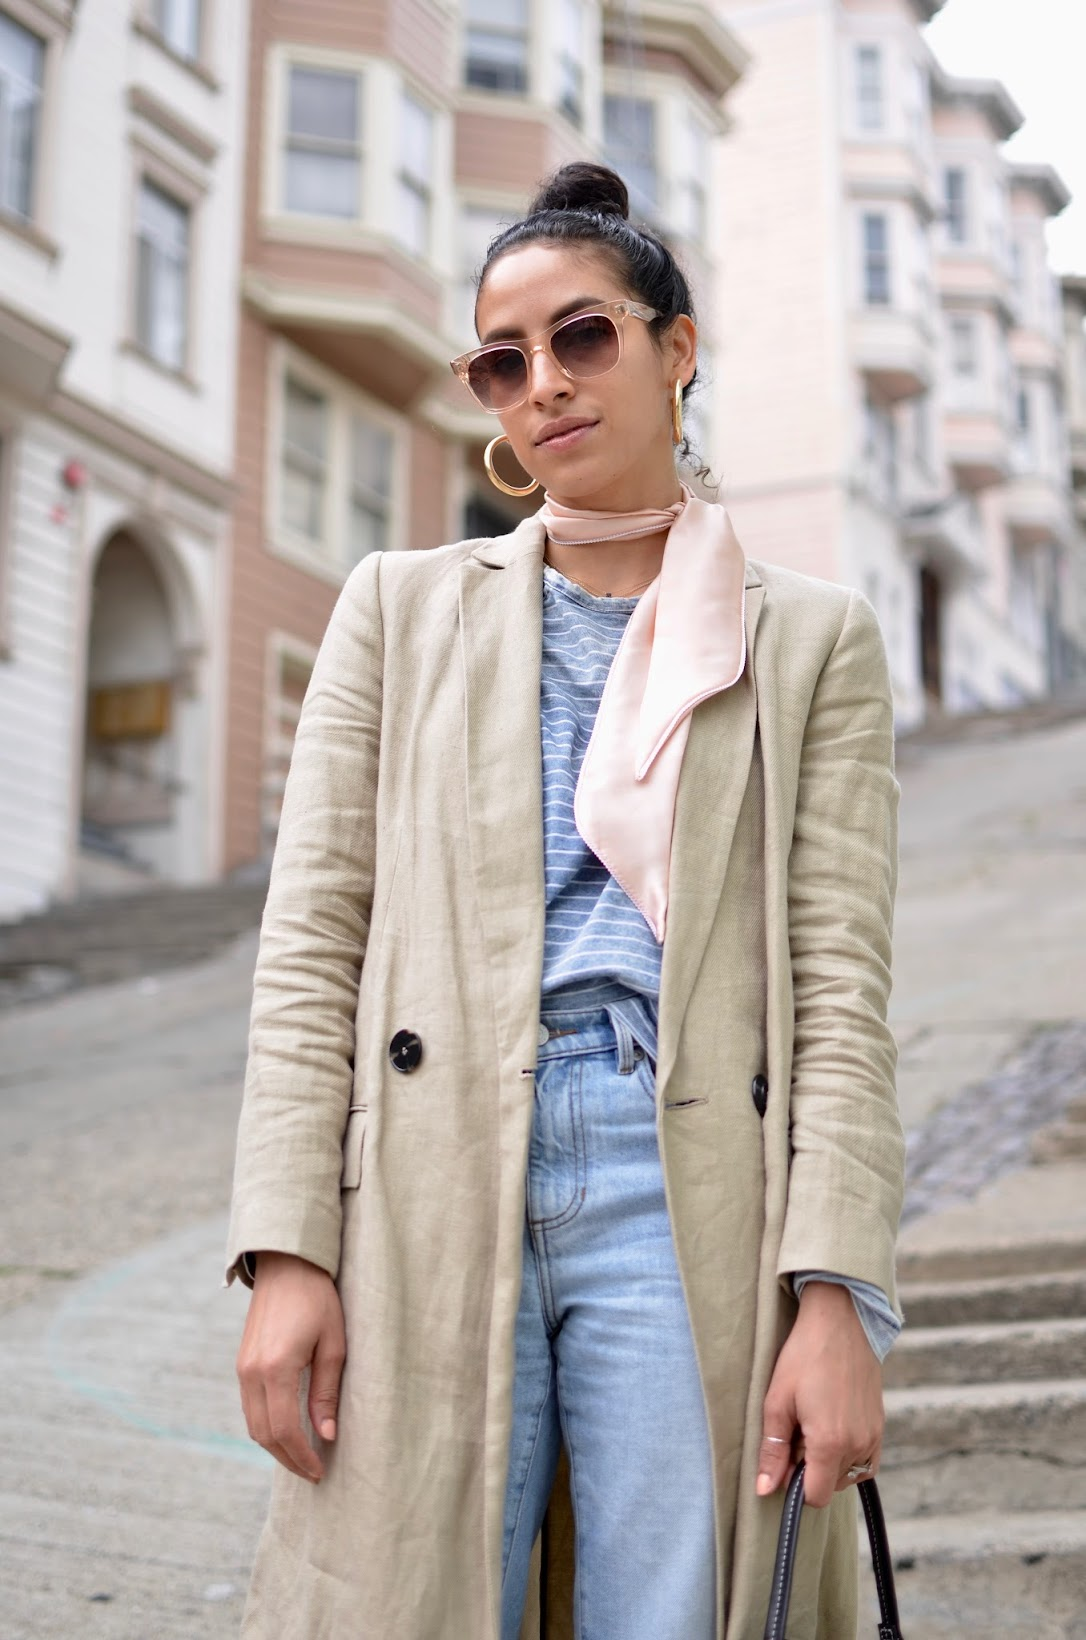 linen longline blazer, denim blazer, round bag, vasic round bag, spring pastels, what to wear this spring, spring microtrends